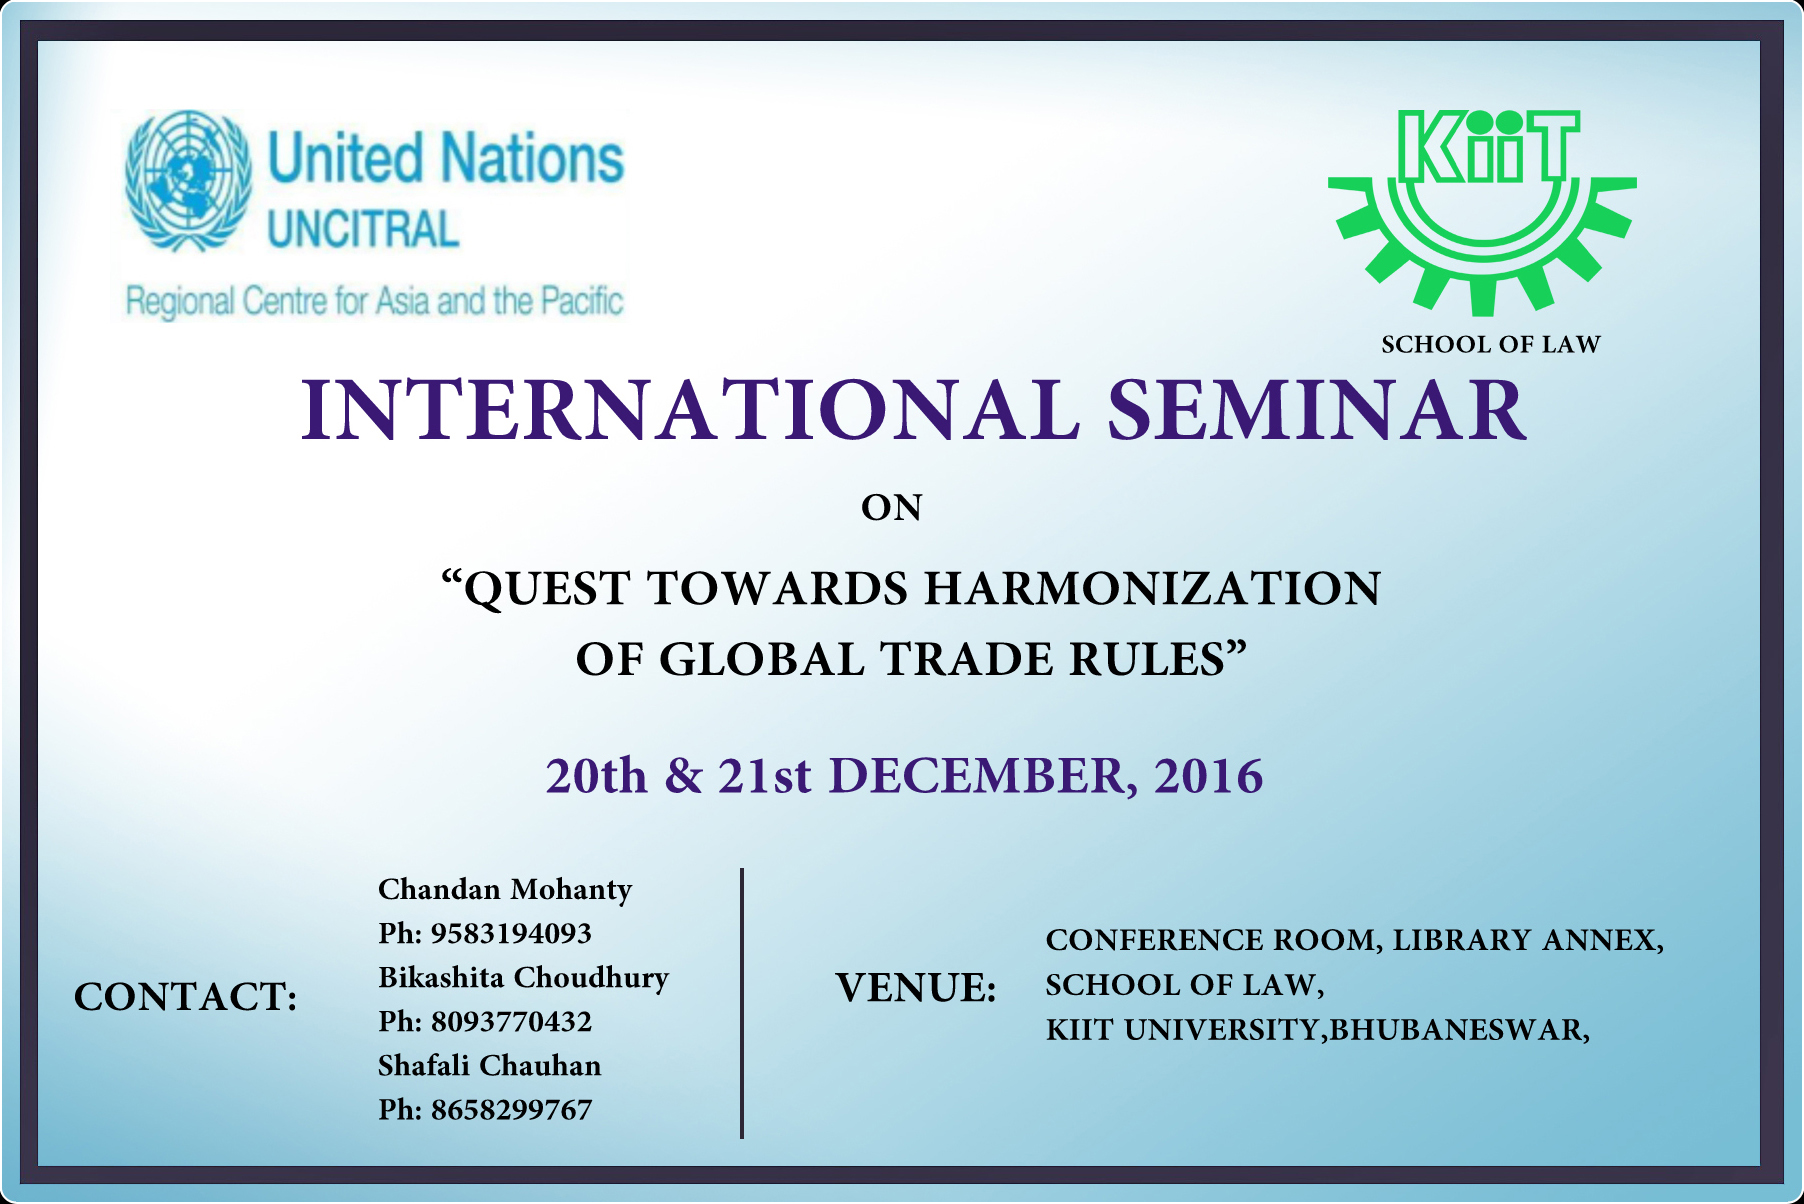 Call for Papers KIIT University International Seminar on Quest Towards Harmonization of Global Trade Rules